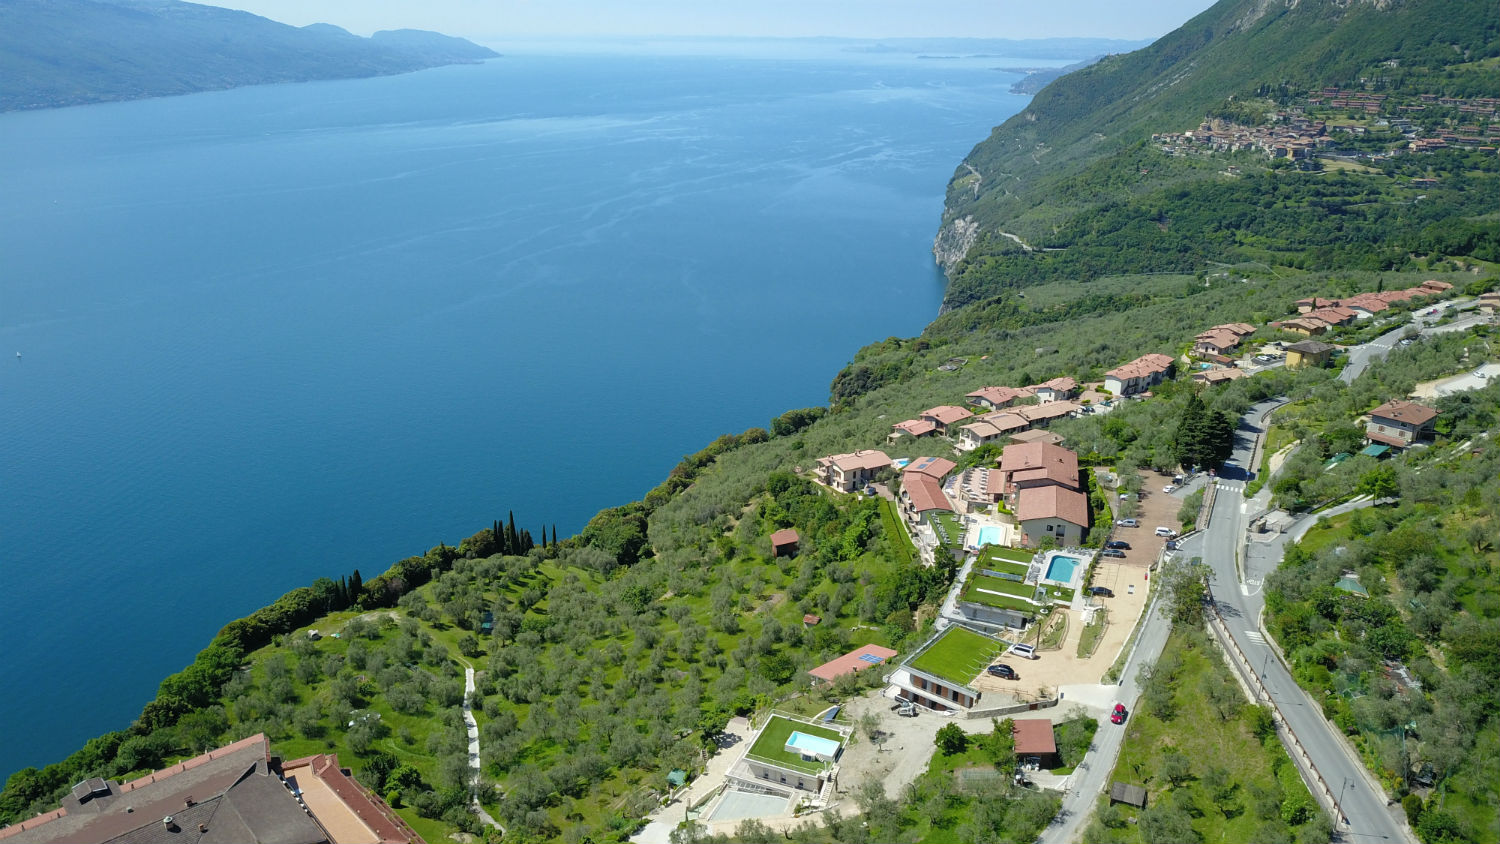 Prices Apartments Ruculì holidays on Lake Garda